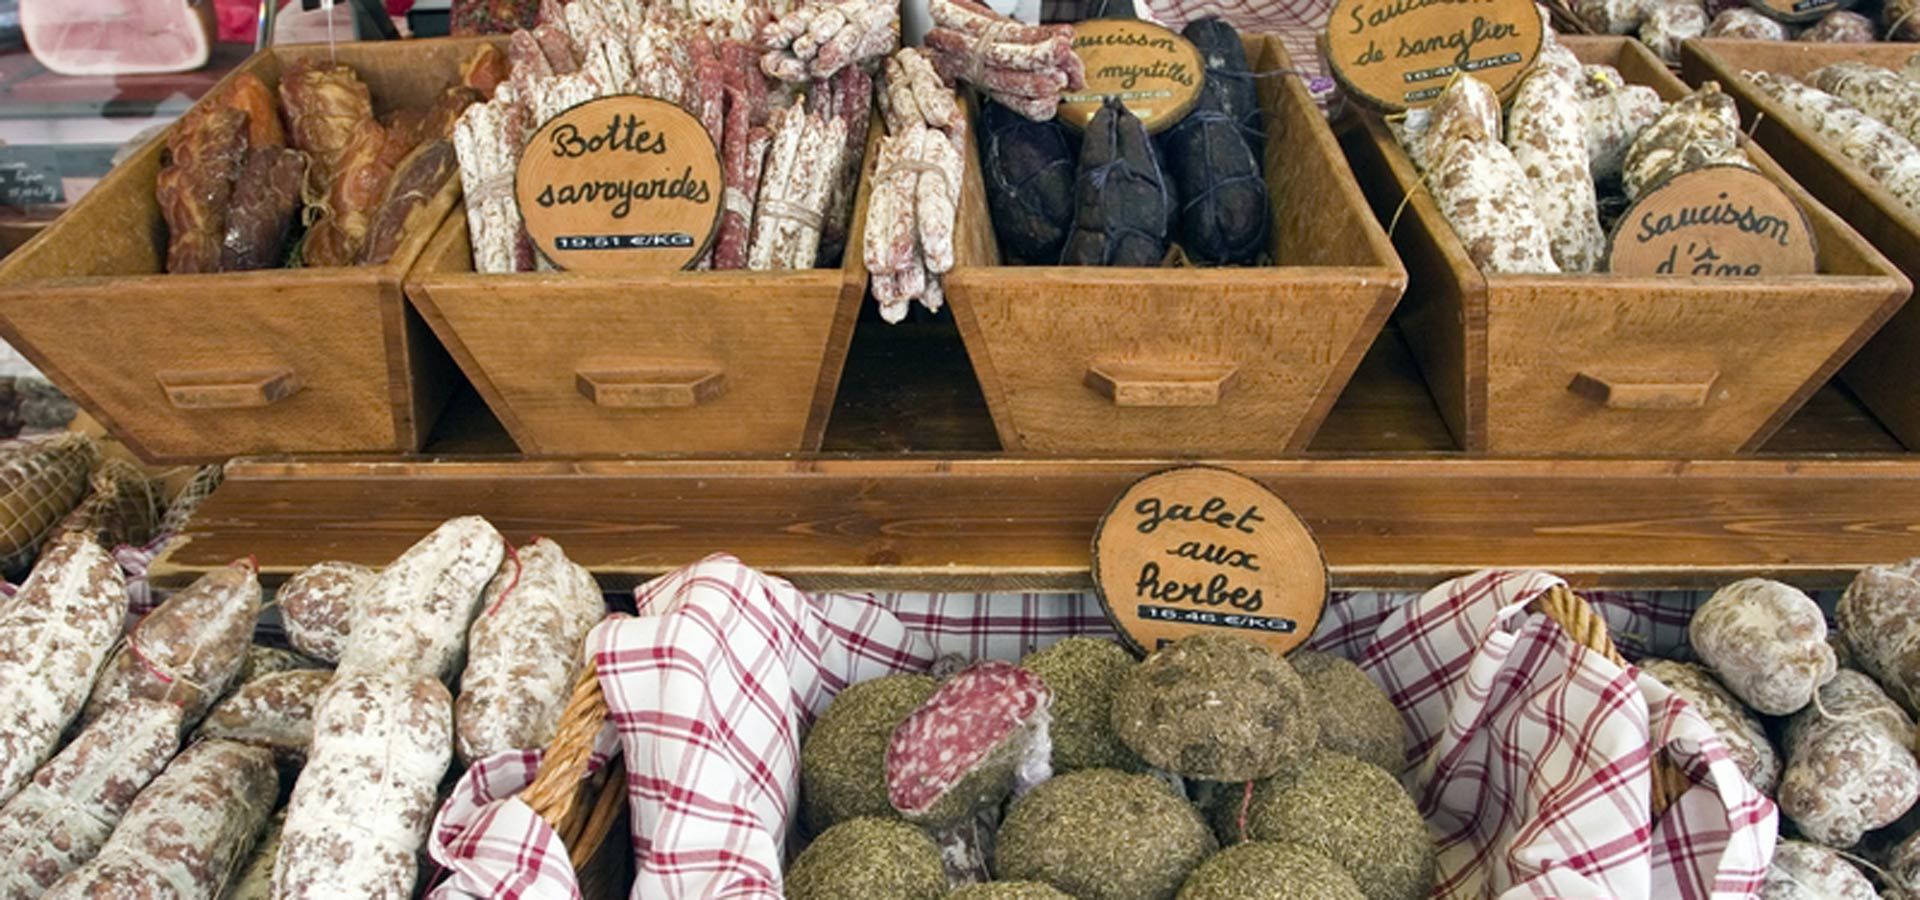 Cuisine Provencale Blanche Et Bleue guide to french cuisine | inntravel